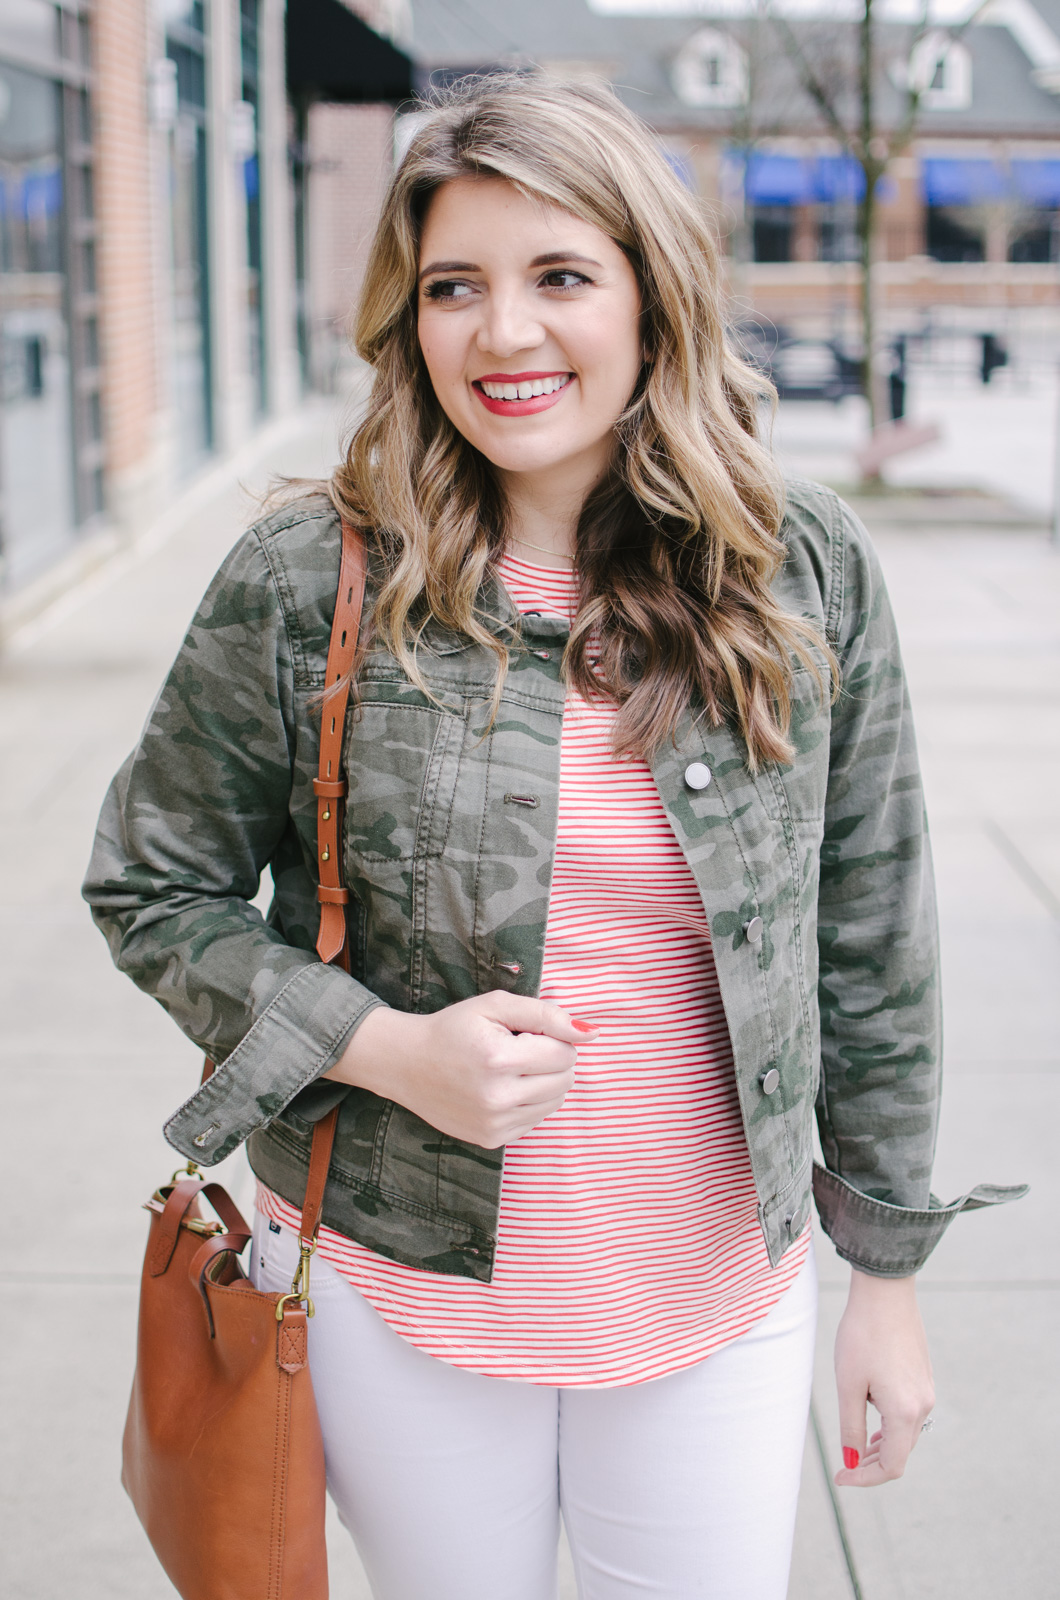 stripes and camo spring outfit - spring print mix outfit | See more cute spring outfits at bylaurenm.com!